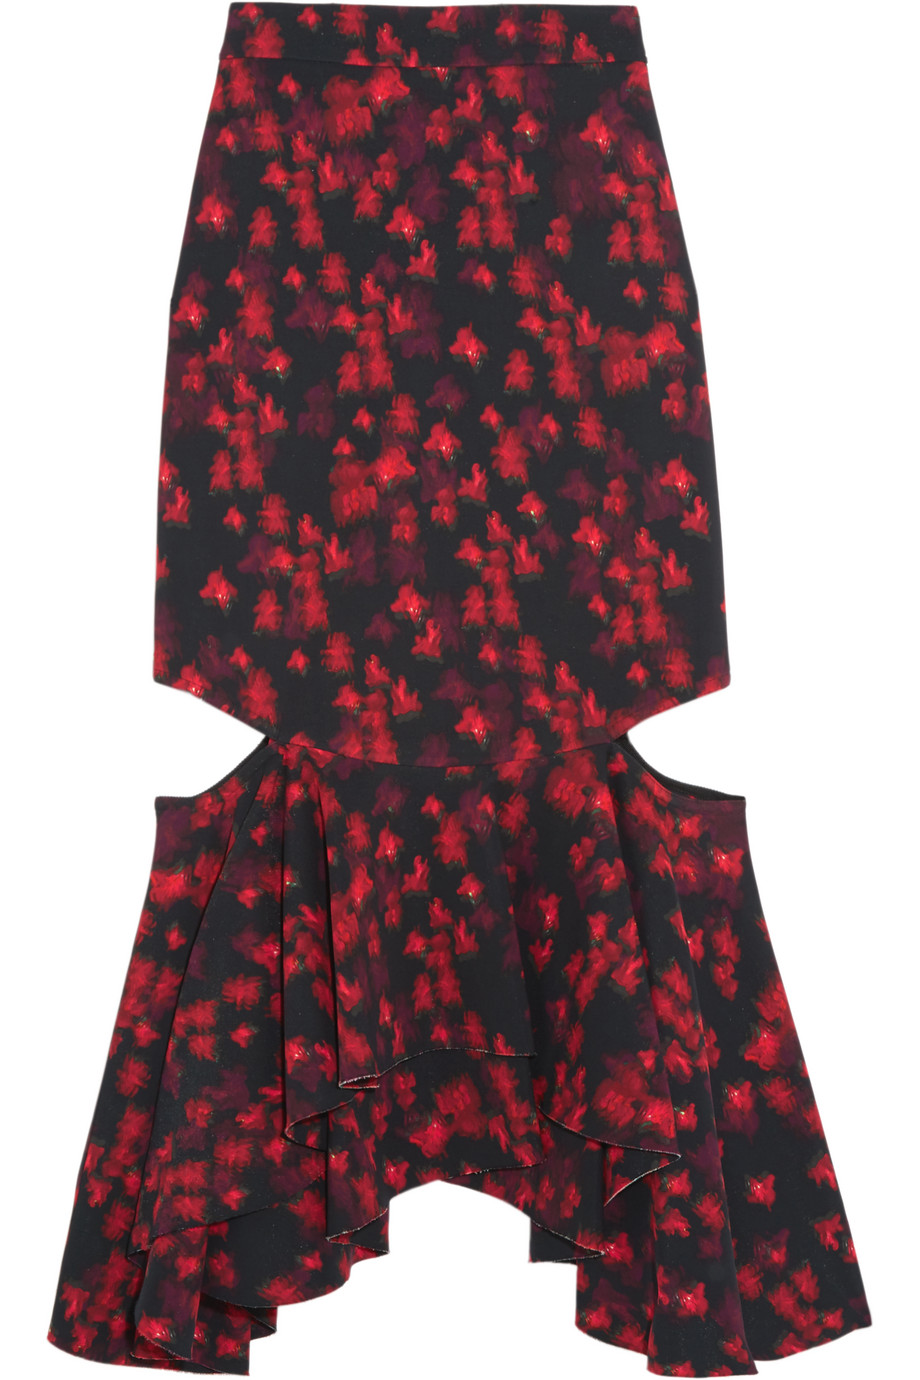 Givenchy Cutout Ruffled Midi Skirt in Floral-Print Stretch-Satin, Size: 36